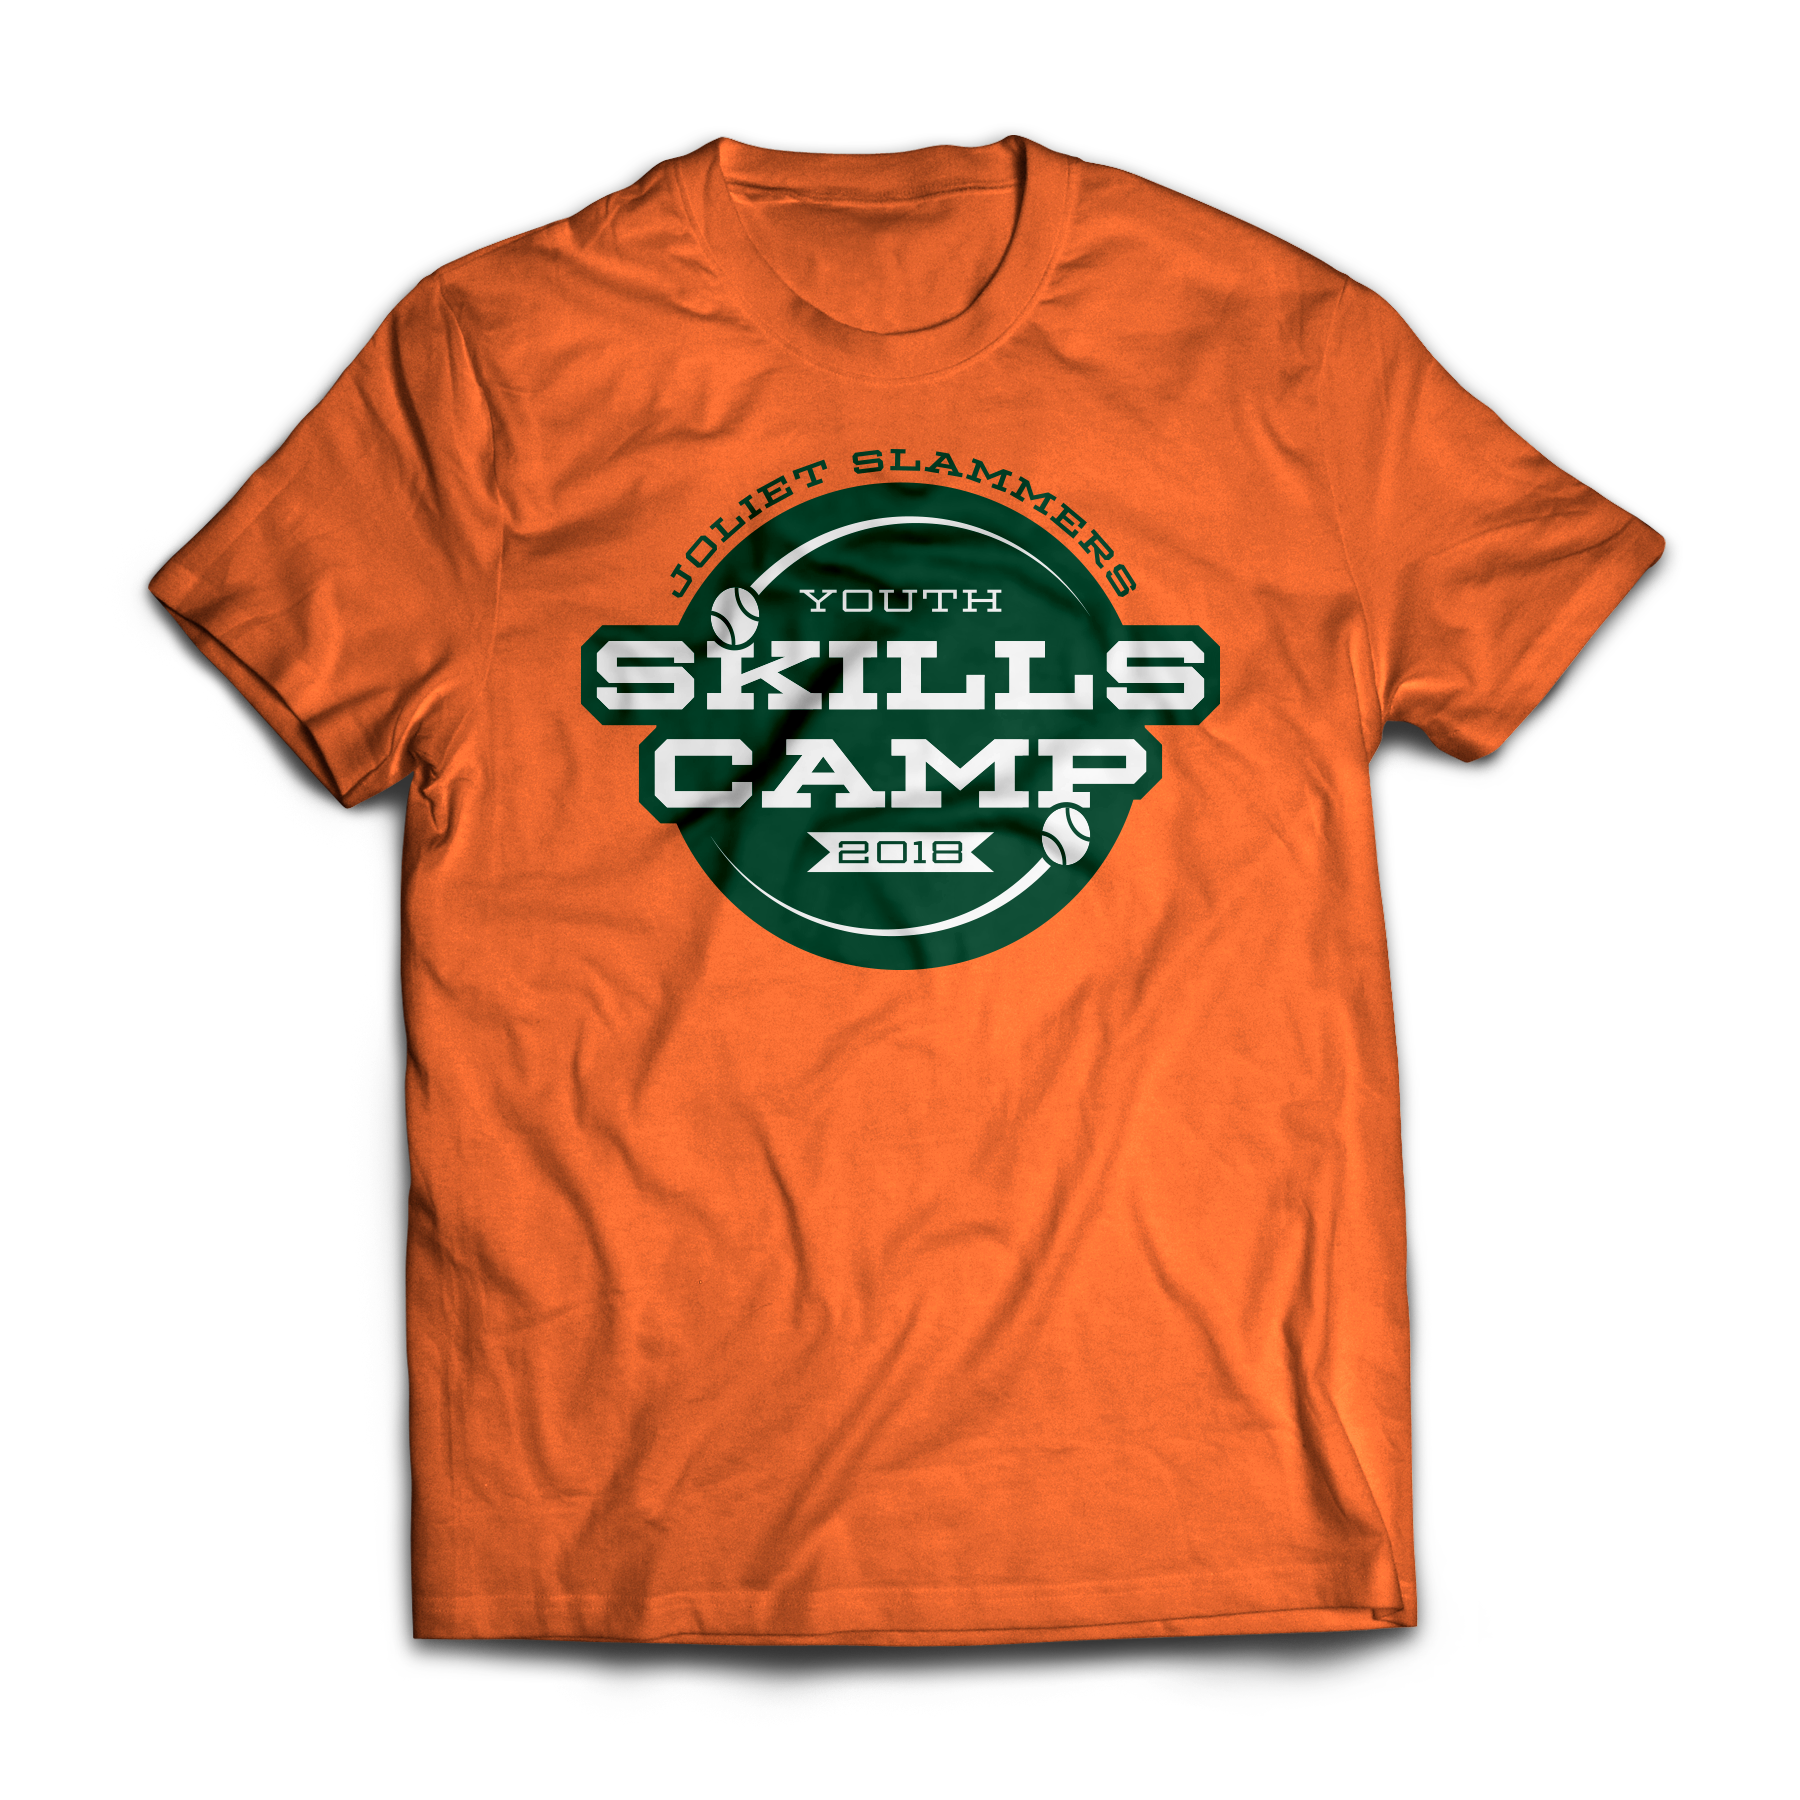 Chain Gang shirt created for the team's promotional team to wearing during games and at events.